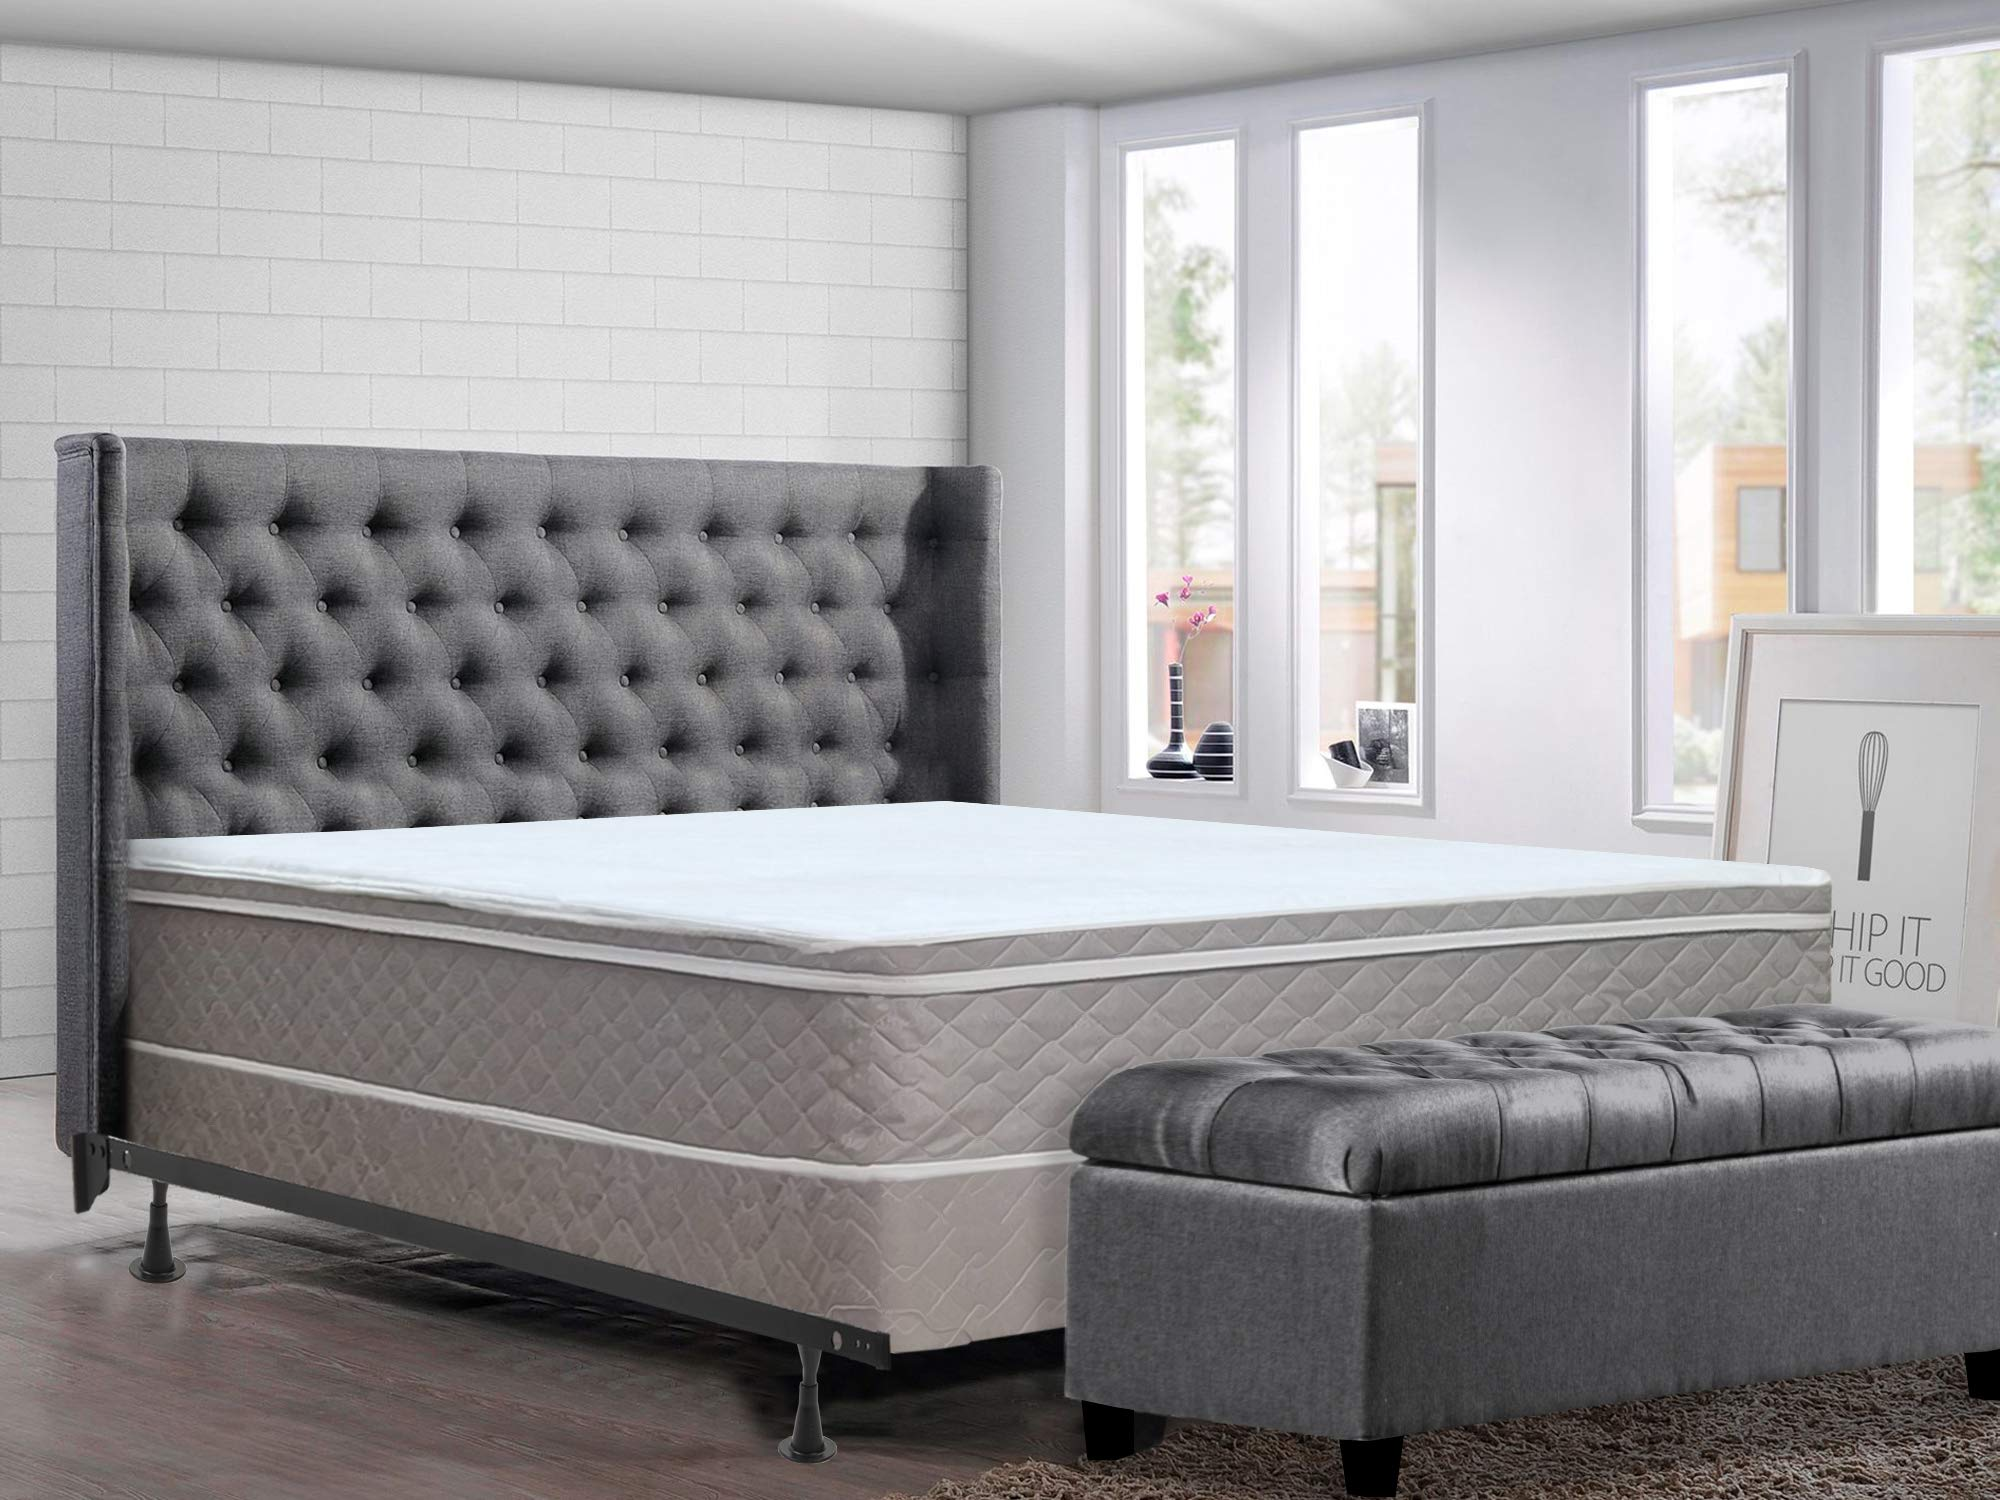 Greaton, 10-inch Medium Plush Innerspring Eurotop Mattress and Box Spring/Foundation Set with Frame, No Assembly Required, King